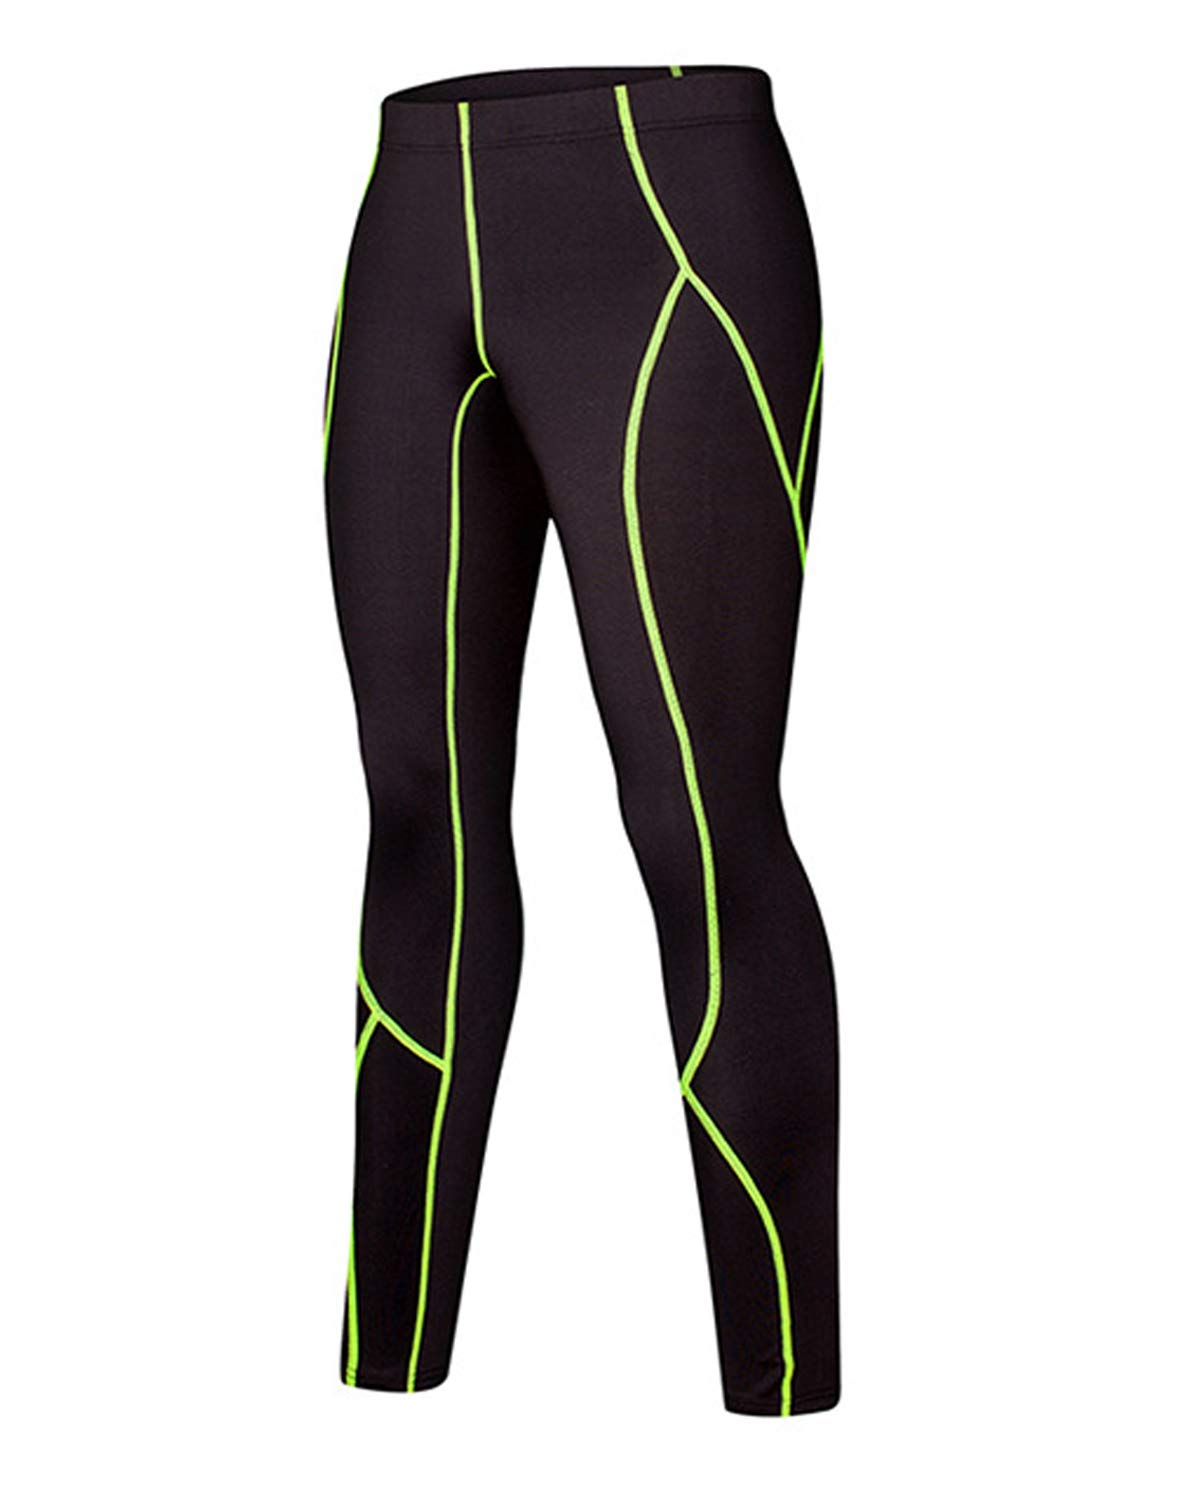 LNJLVI Boys & Girls Compression Pants Sports Base Layer Legging/Tights (A Fleece Lined, 7) by LNJLVI